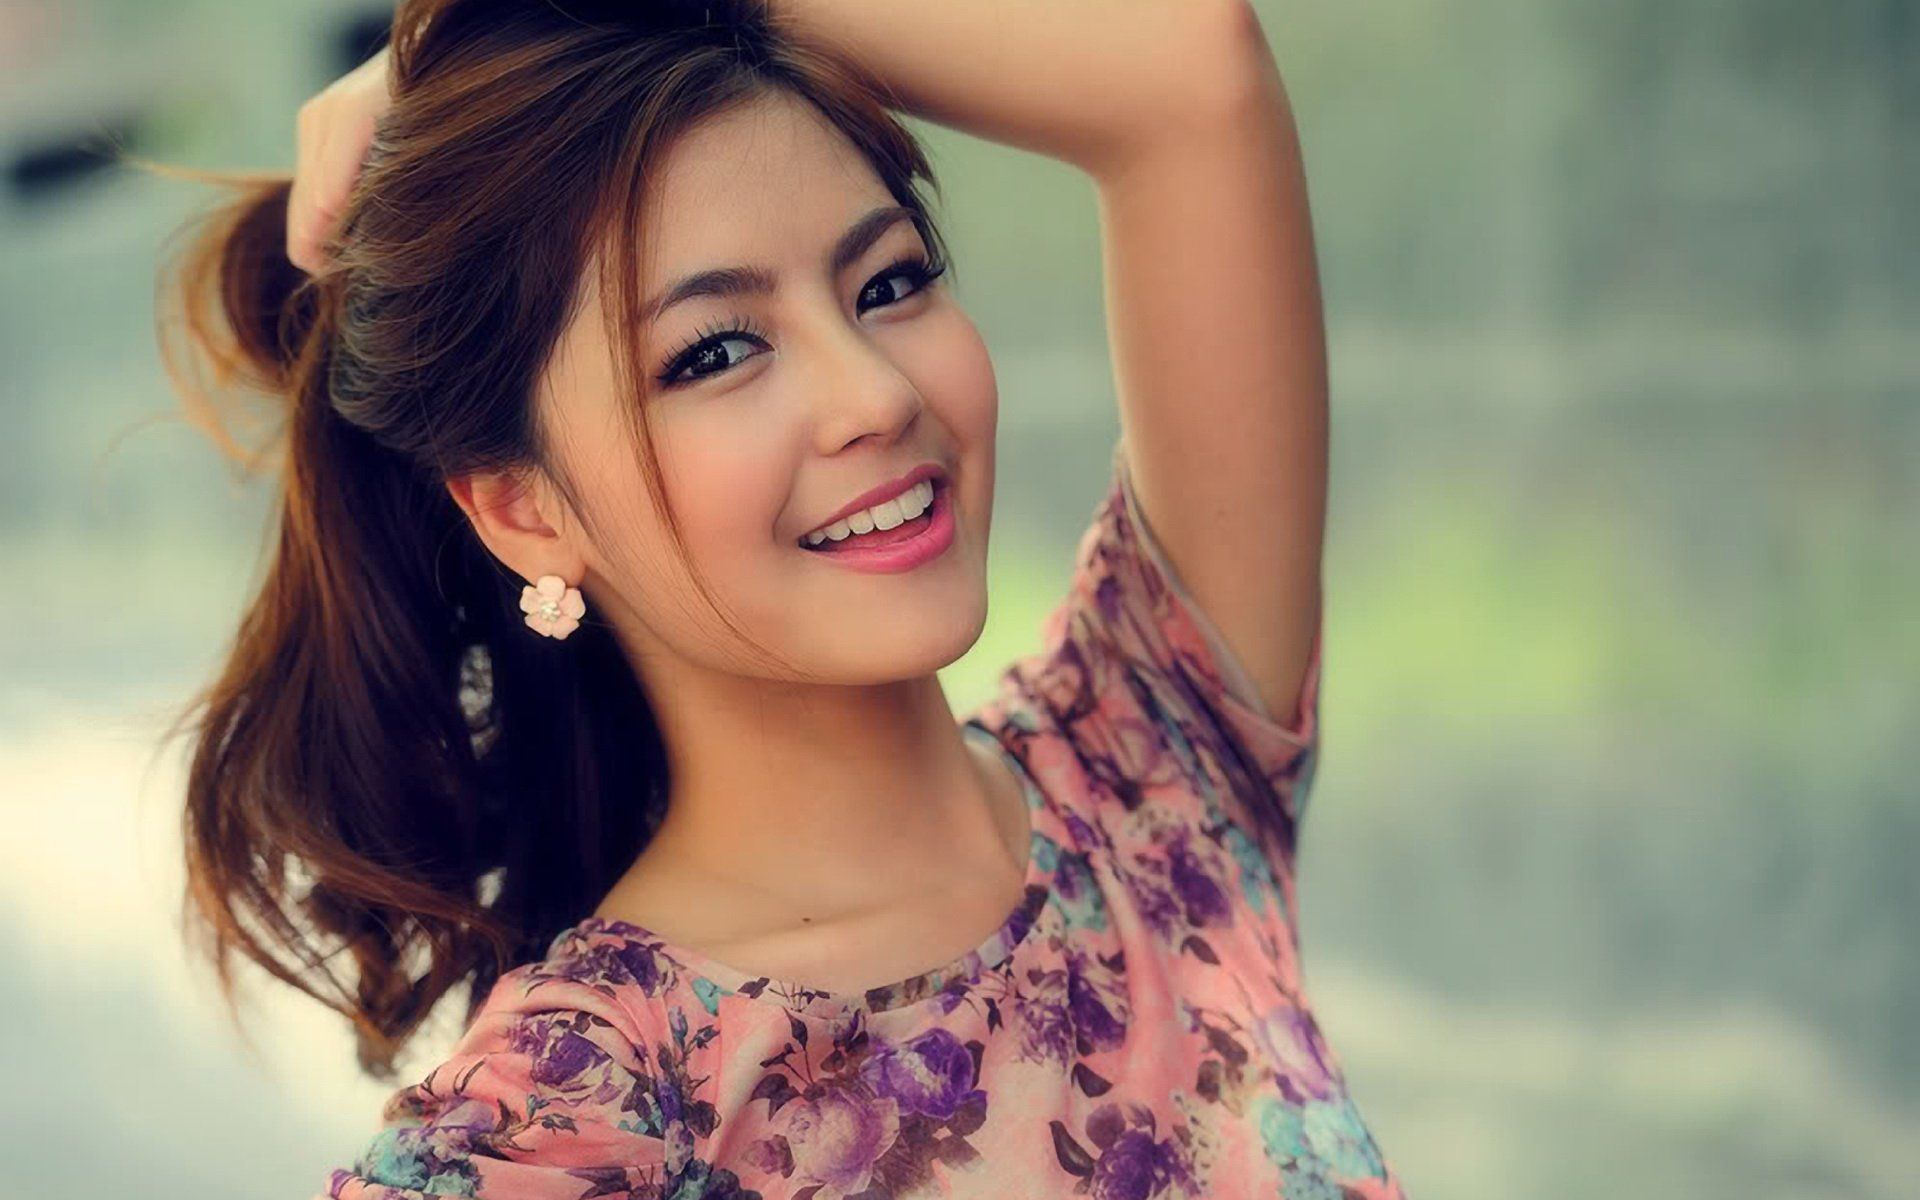 sweet girl wallpapers download group | hd wallpapers | pinterest